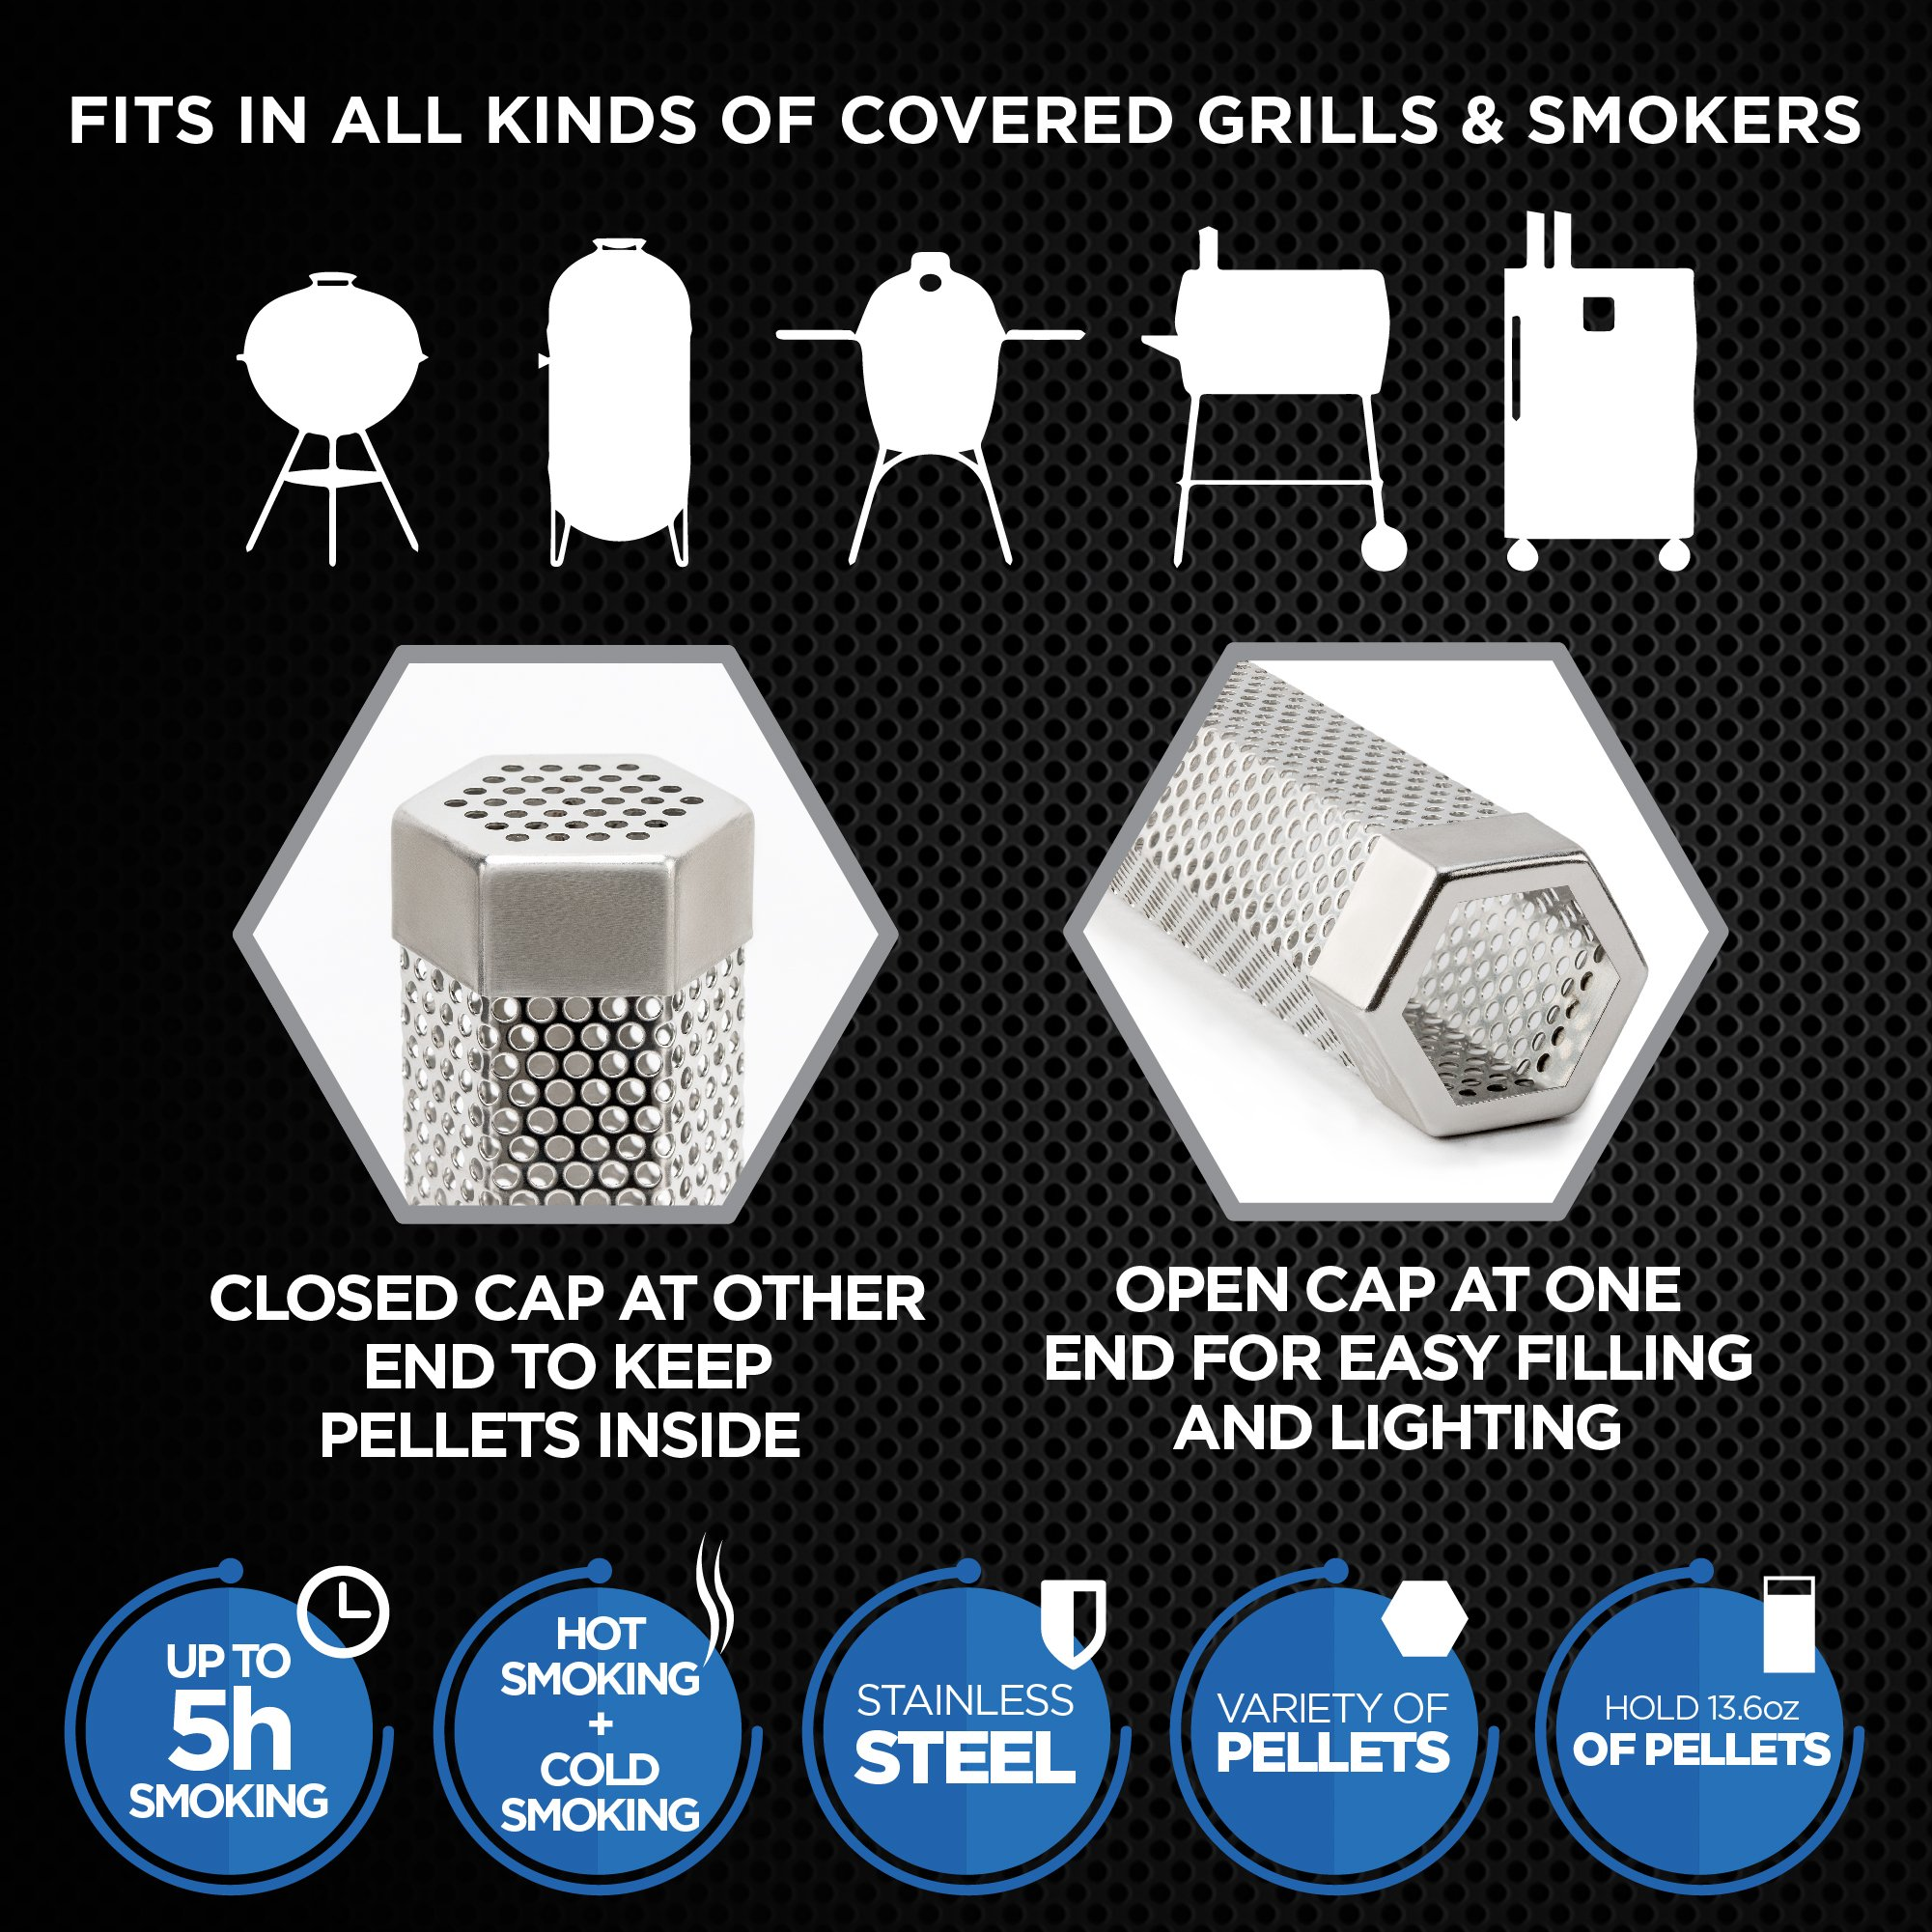 LIZZQ Premium Pellet Smoker Tube 12'' - 5 Hours Billowing Smoke any Grill Smoker, Hot Cold Smoking - Easy, safety tasty smoking - Free eBook Grilling Ideas Recipes by LIZZQ (Image #4)